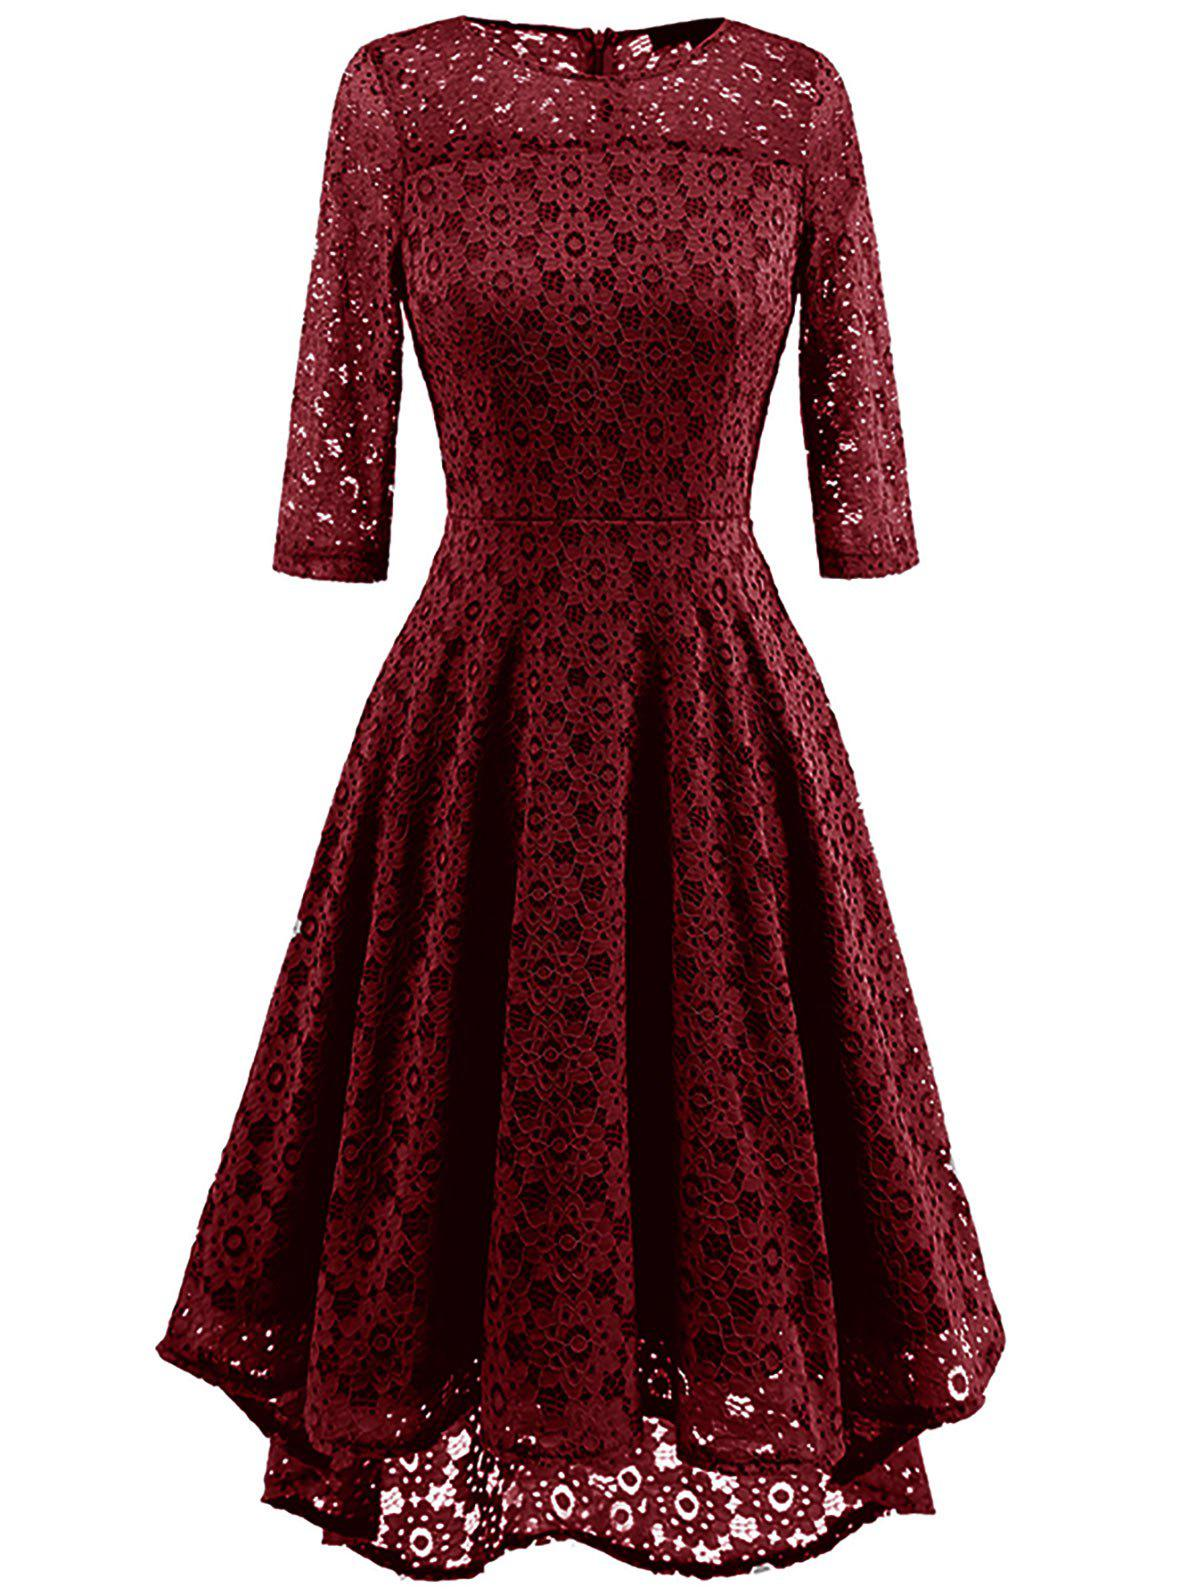 Lace Crochet High Low Midi A Line Dress - WINE RED M